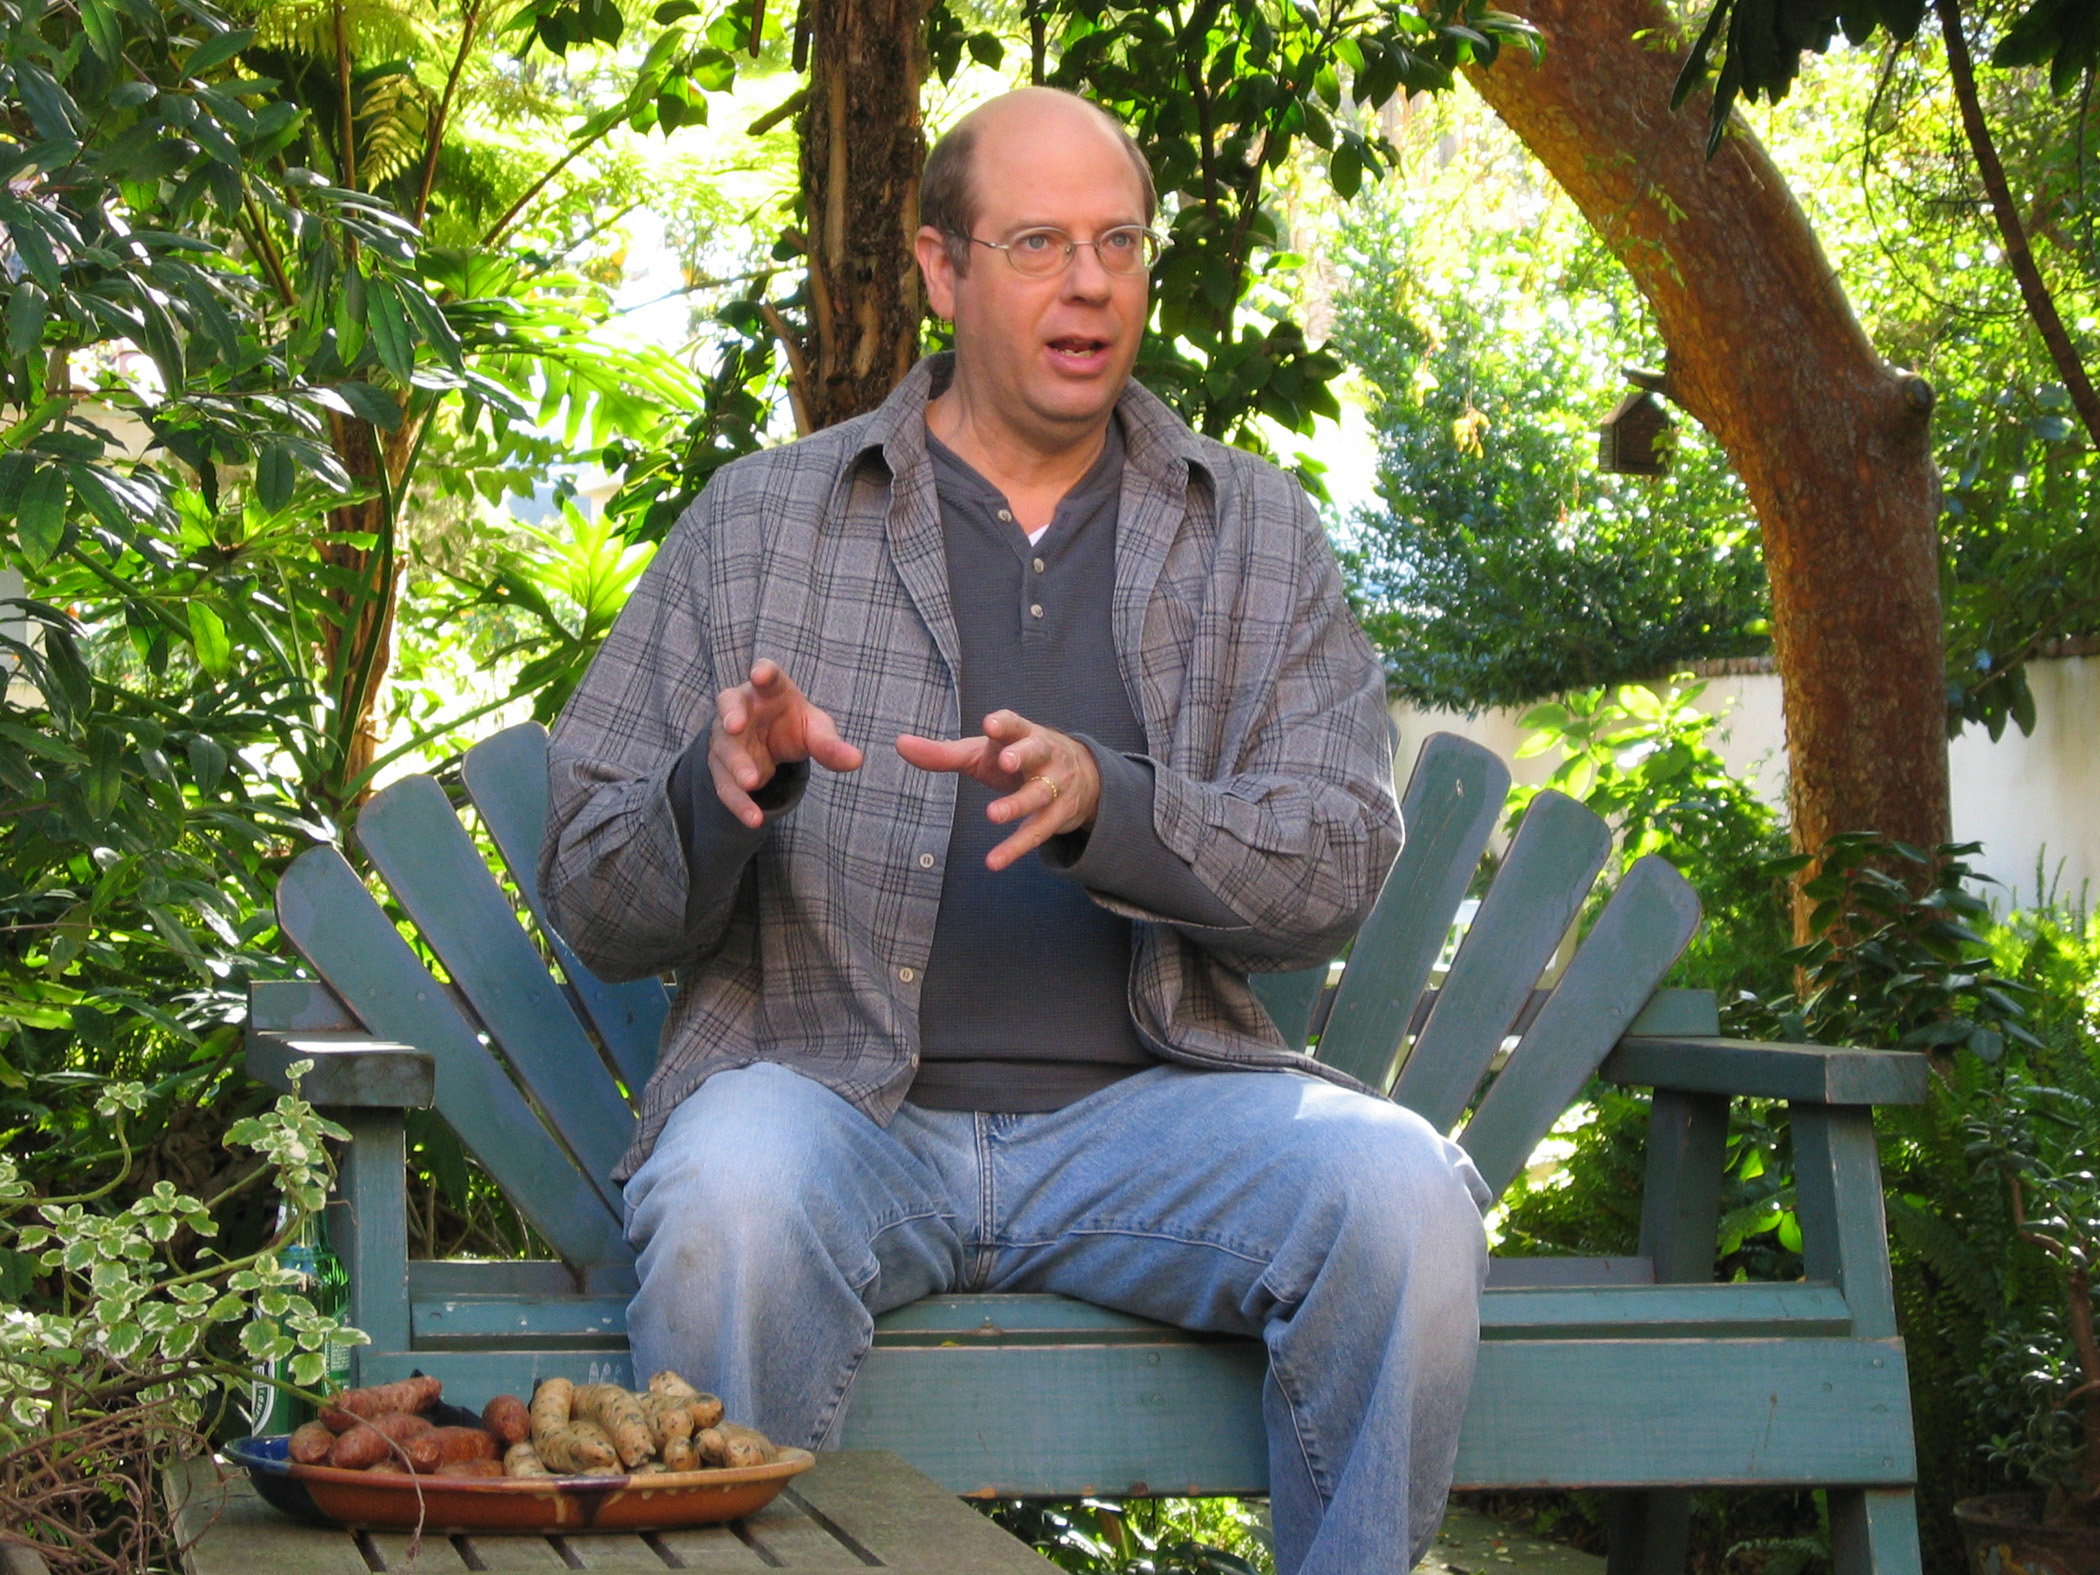 stephen tobolowsky twitterstephen tobolowsky groundhog day, stephen tobolowsky movies, stephen tobolowsky, stephen tobolowsky net worth, stephen tobolowsky's birthday party, stephen tobolowsky seinfeld, stephen tobolowsky law and order svu, stephen tobolowsky podcast, stephen tobolowsky glee, stephen tobolowsky spaceballs, stephen tobolowsky deadwood, stephen tobolowsky height, stephen tobolowsky stevie ray vaughan, stephen tobolowsky californication, stephen tobolowsky heroes, stephen tobolowsky book, stephen tobolowsky twitter, stephen tobolowsky community, stephen tobolowsky silicon valley, stephen tobolowsky mississippi burning